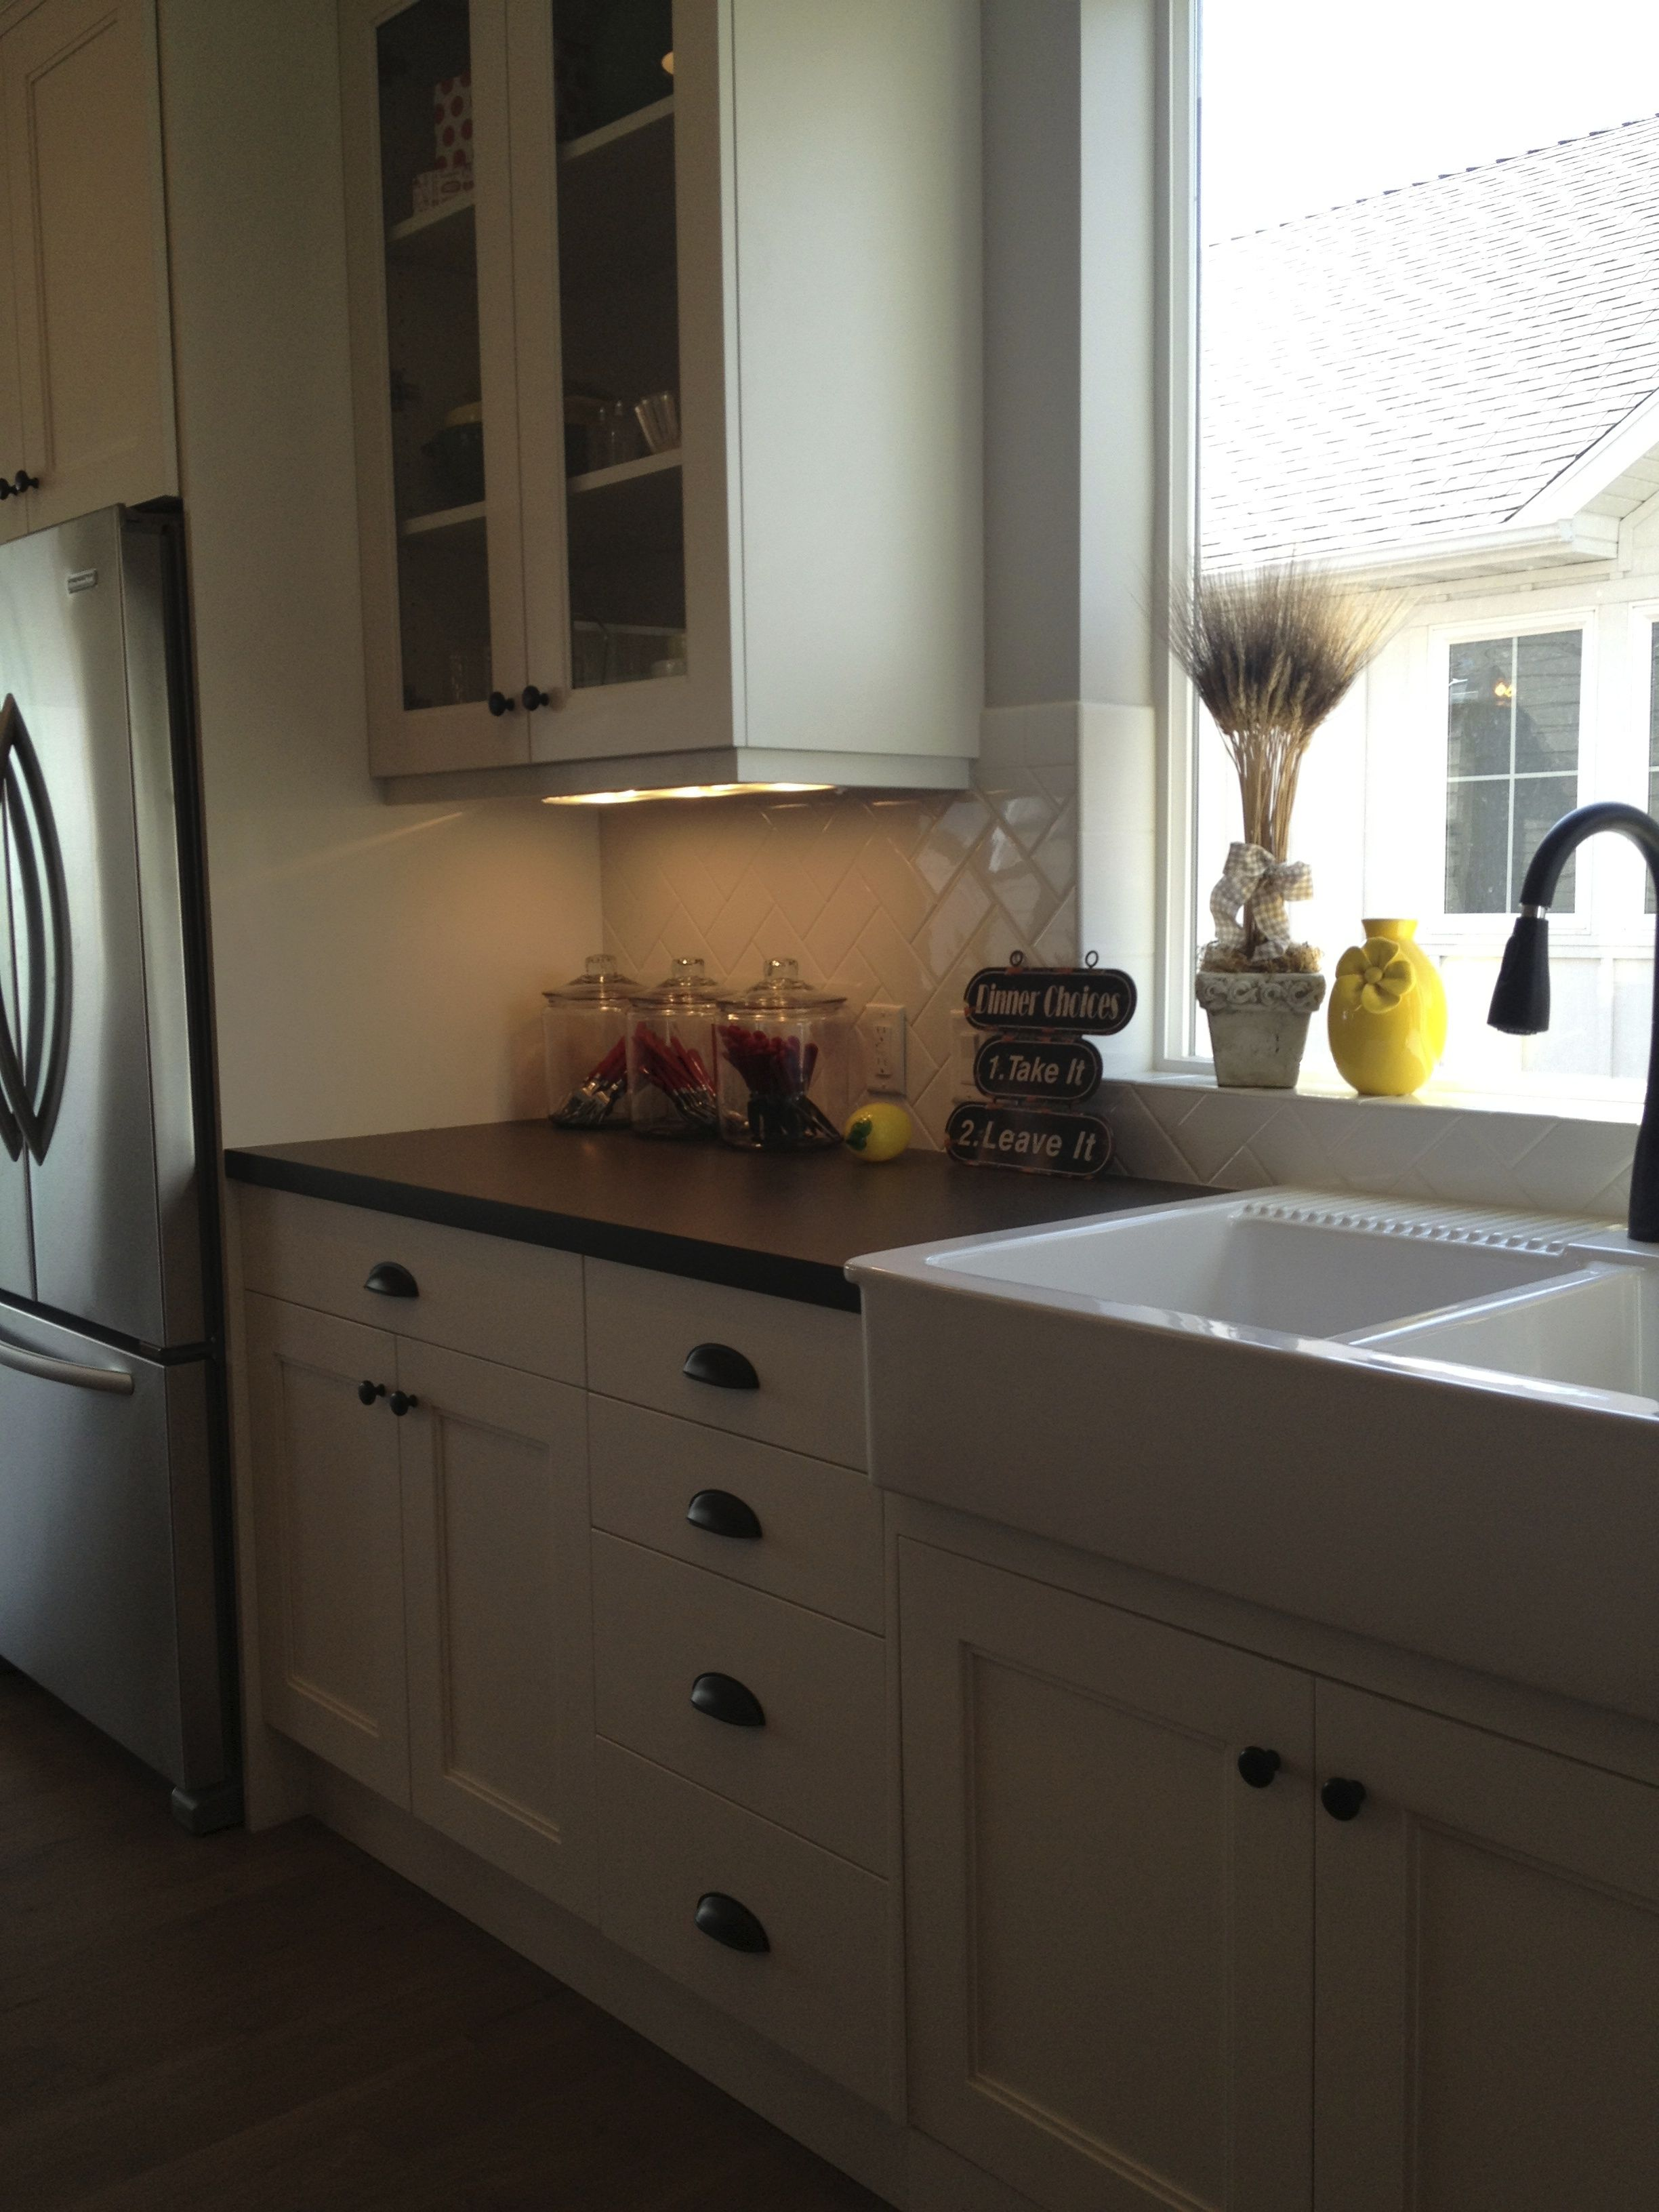 home depot backsplash tiles for kitchen exhaust system white cabinets, farmhouse sink, oil rubbed bronze hardware ...